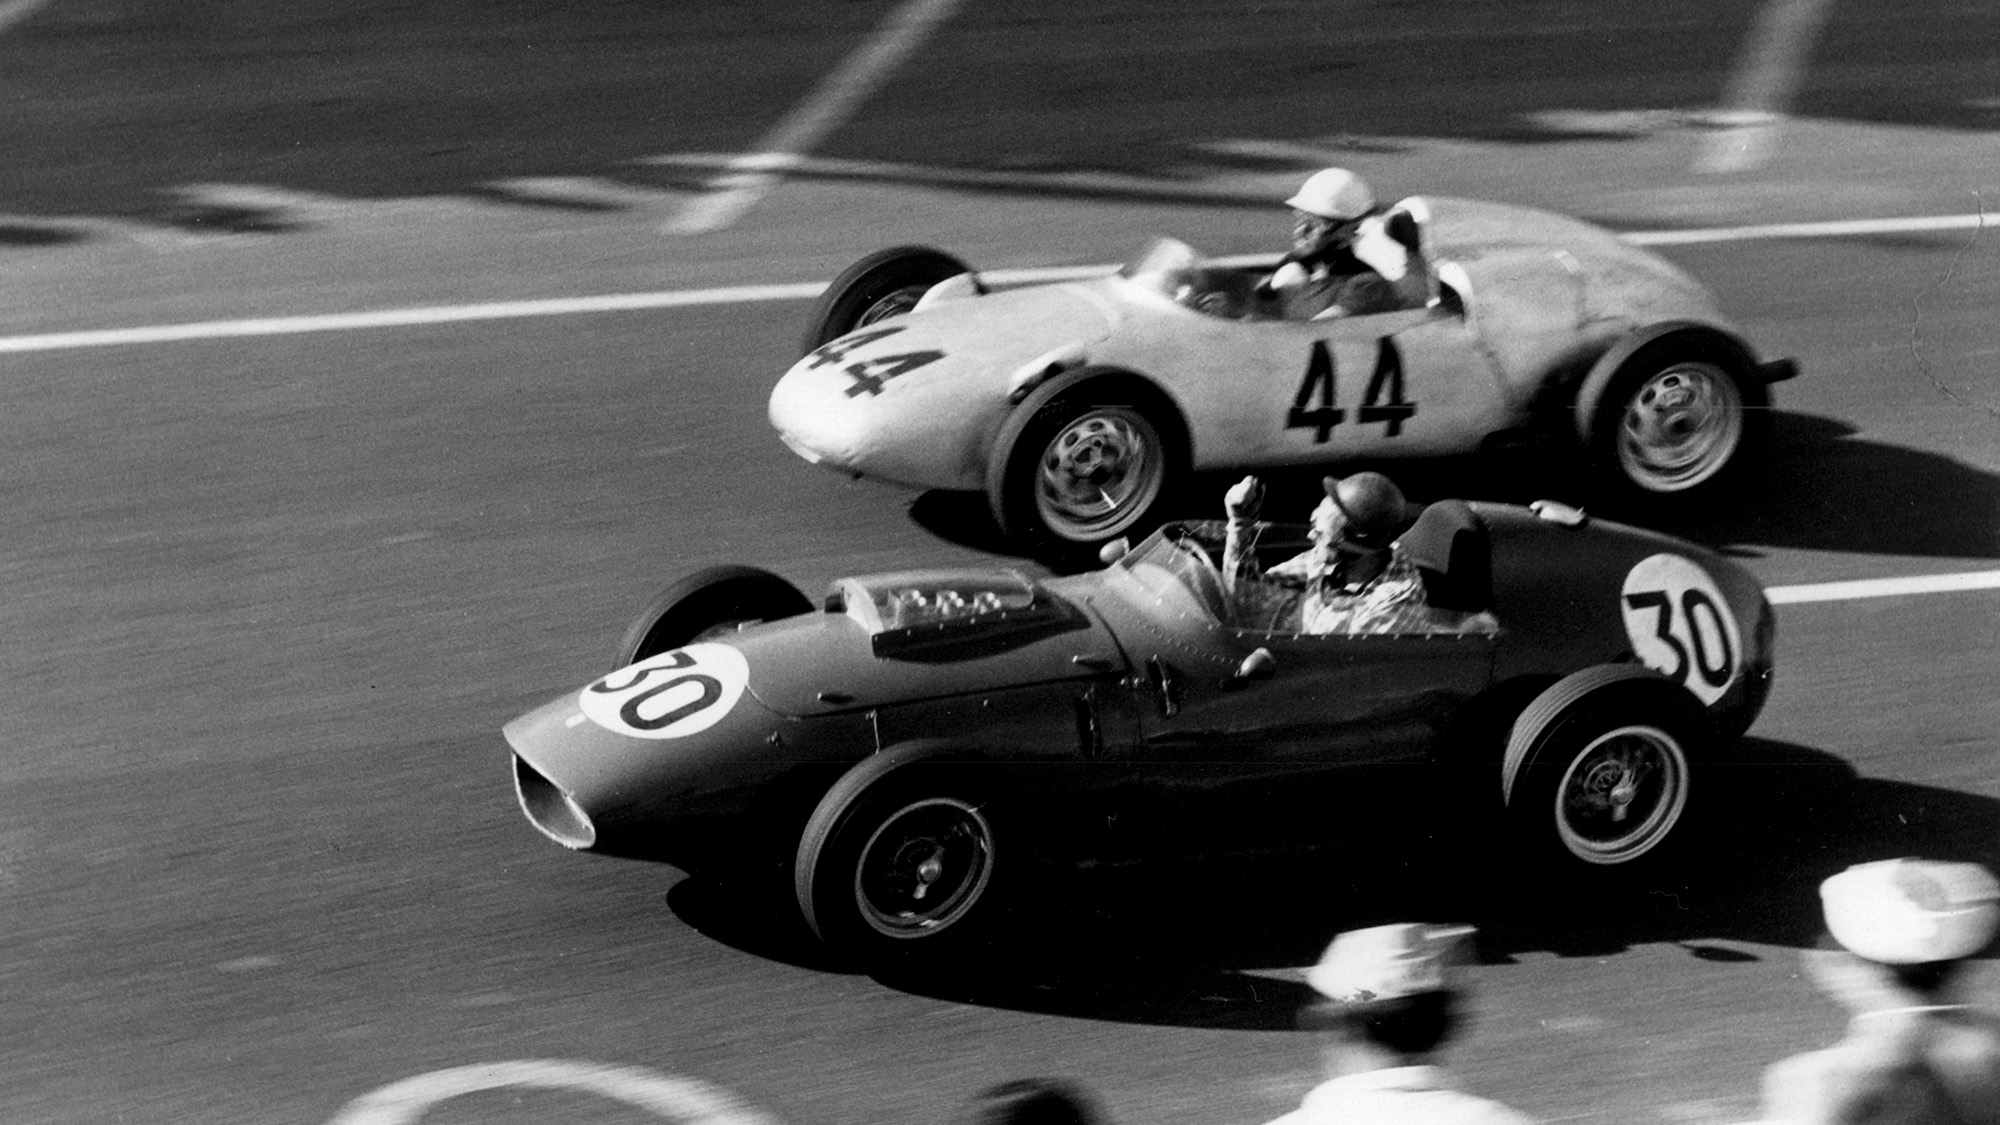 Jean Behra passes Ron Flockhart in the 1959 French Grand Prix